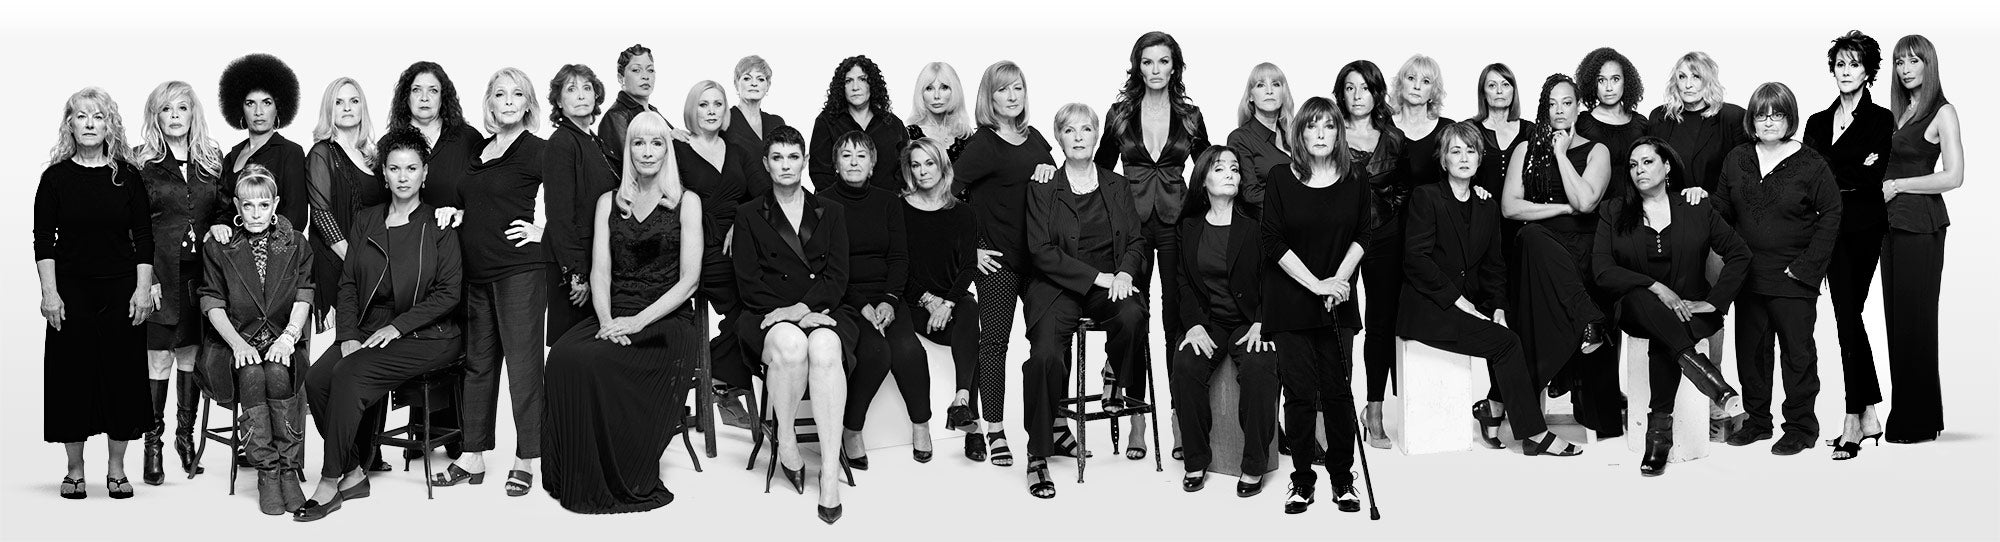 nymag-cosby-women